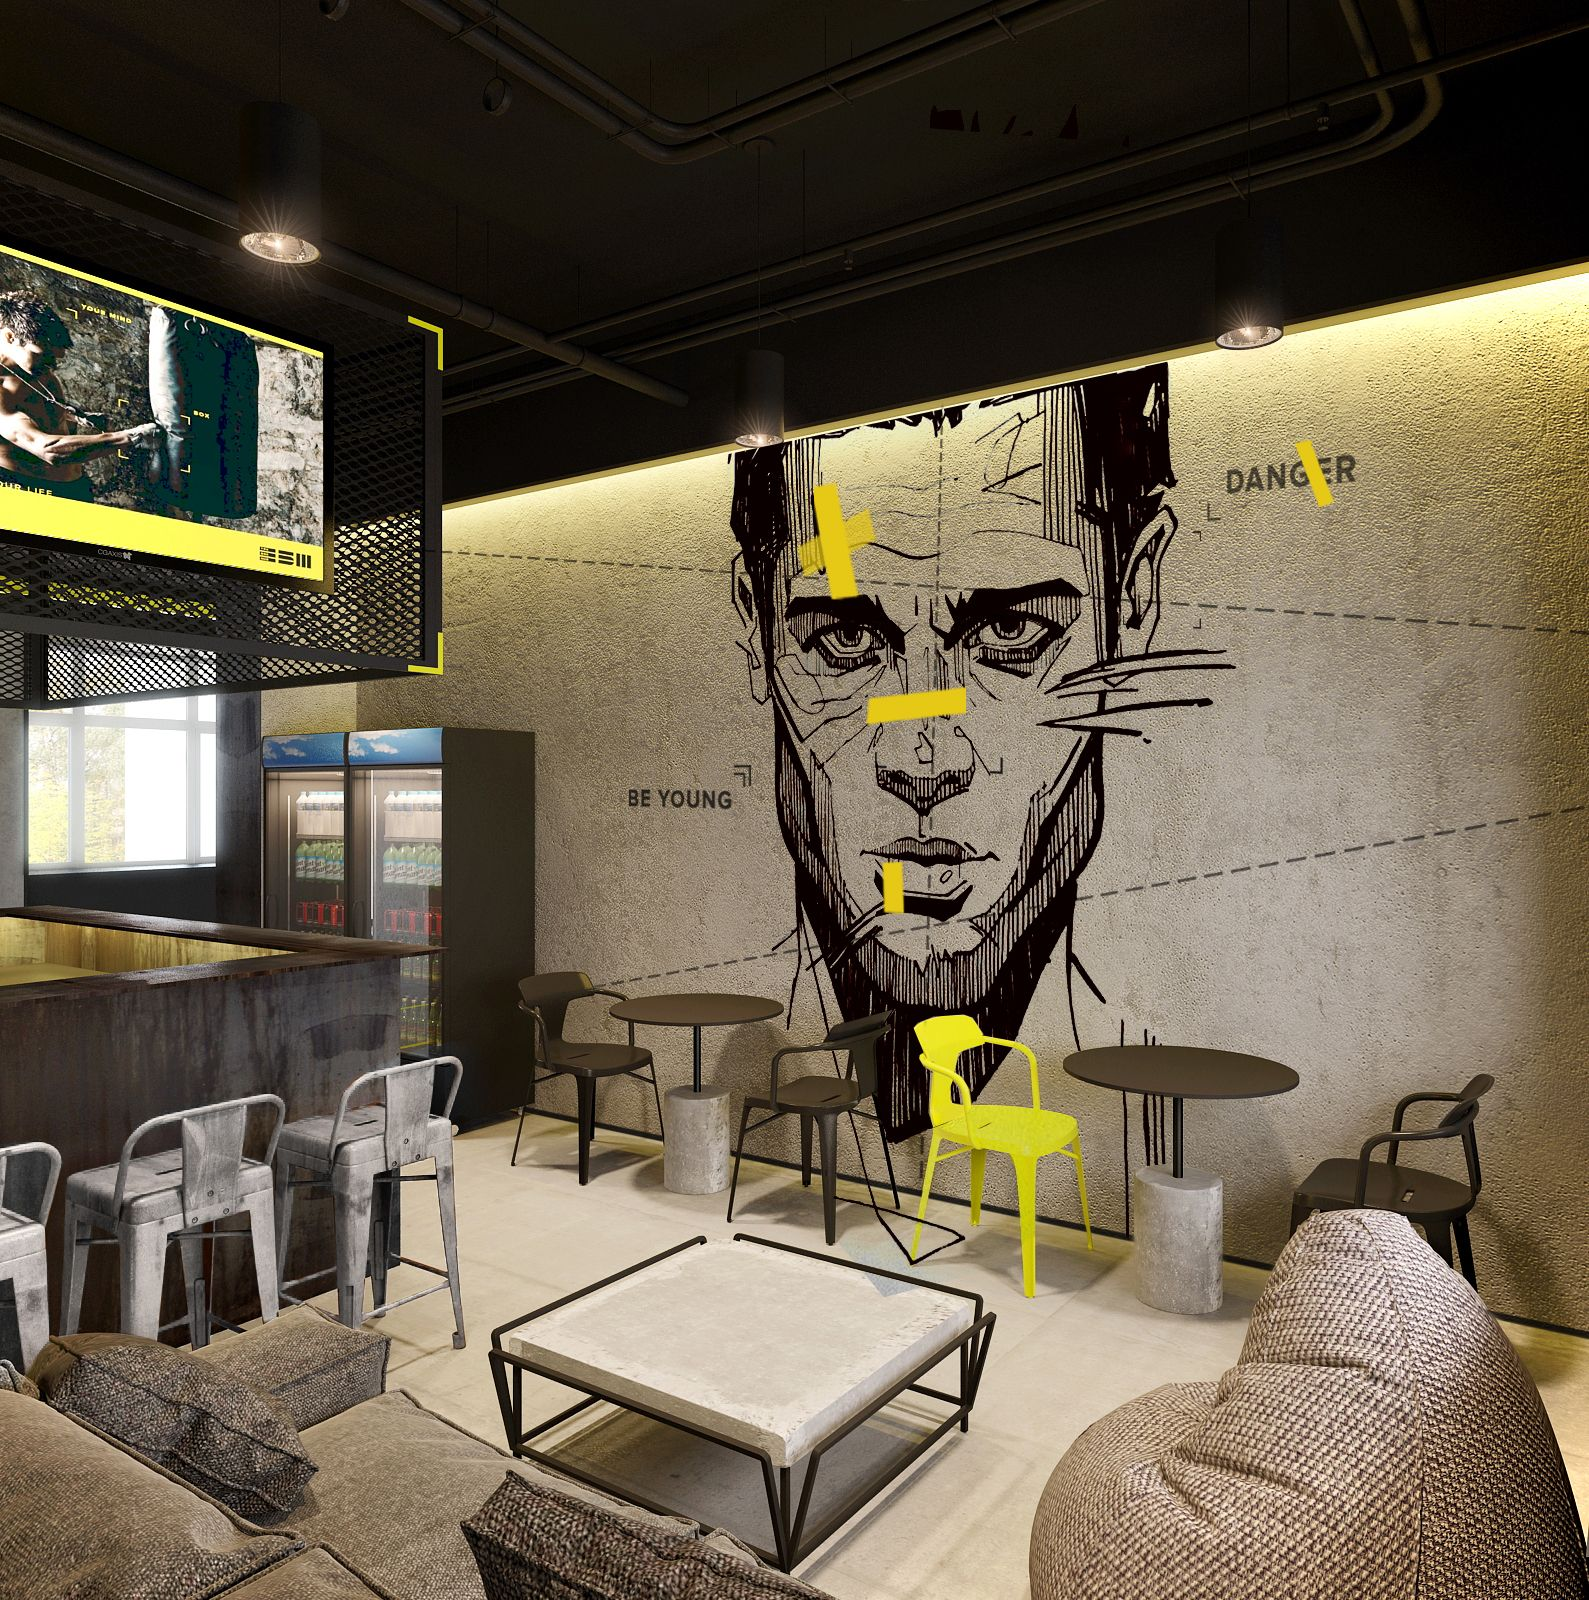 Gym Interior Fitness Design And: Stunning Graphic Mural In Break Away Area